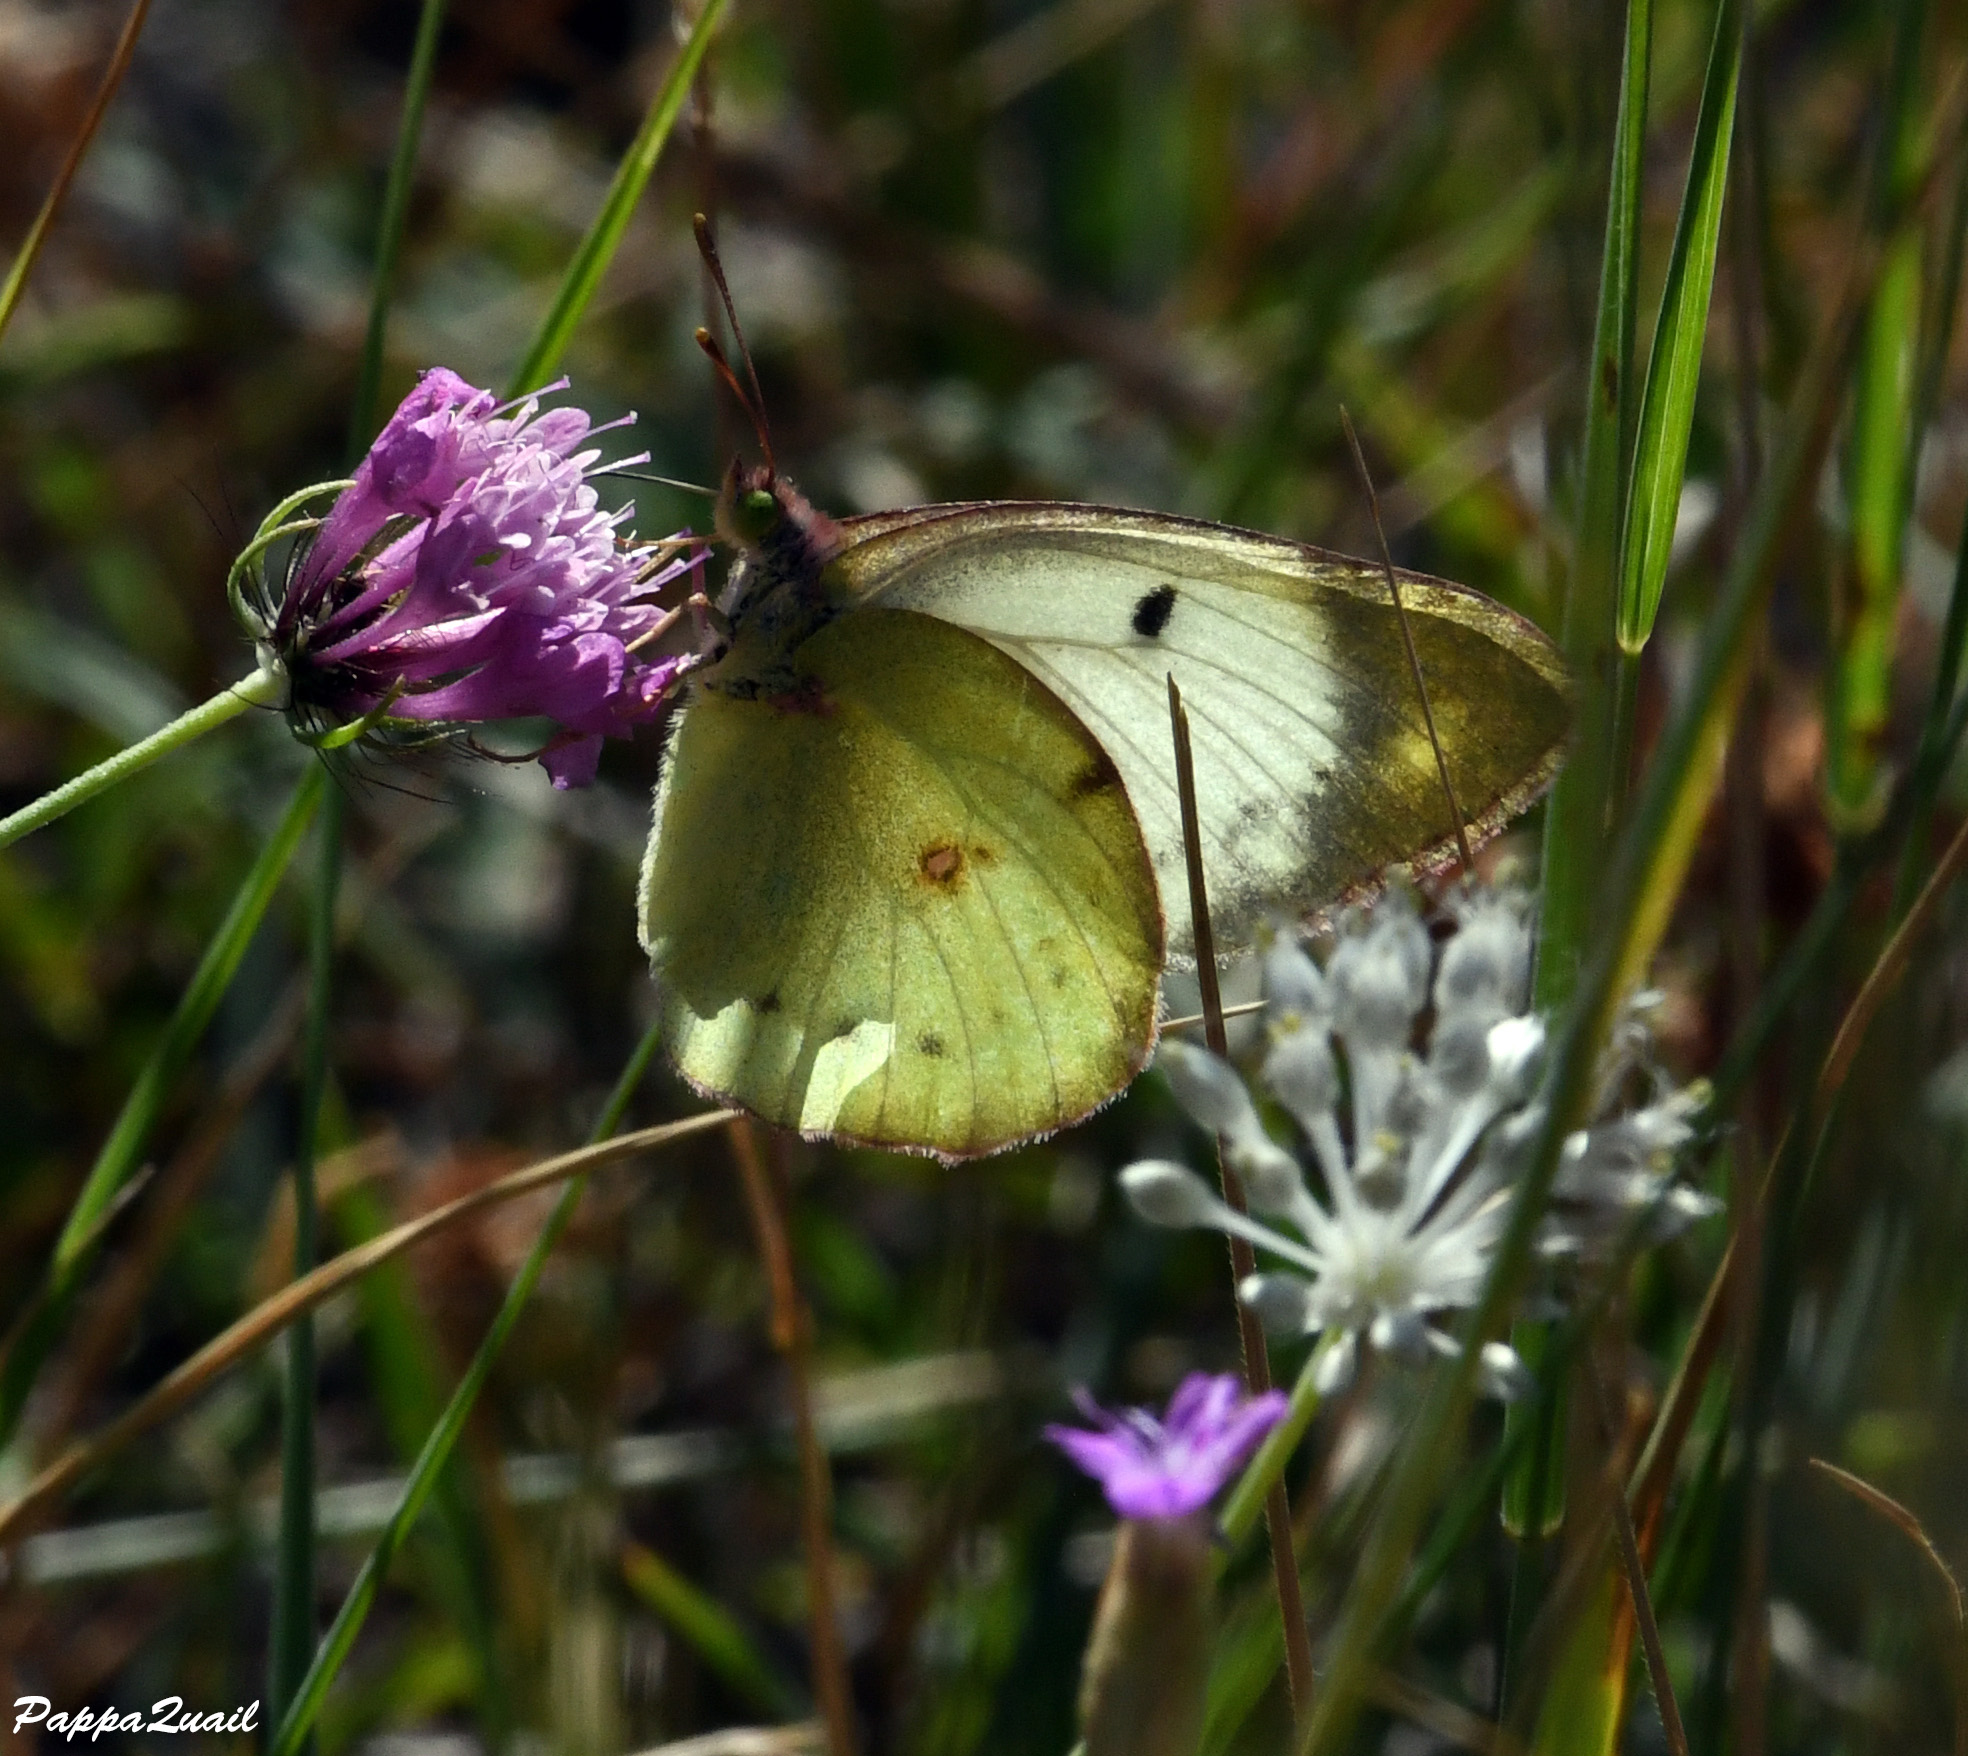 Berger's Clouded Yellow - Colias alfacariensis